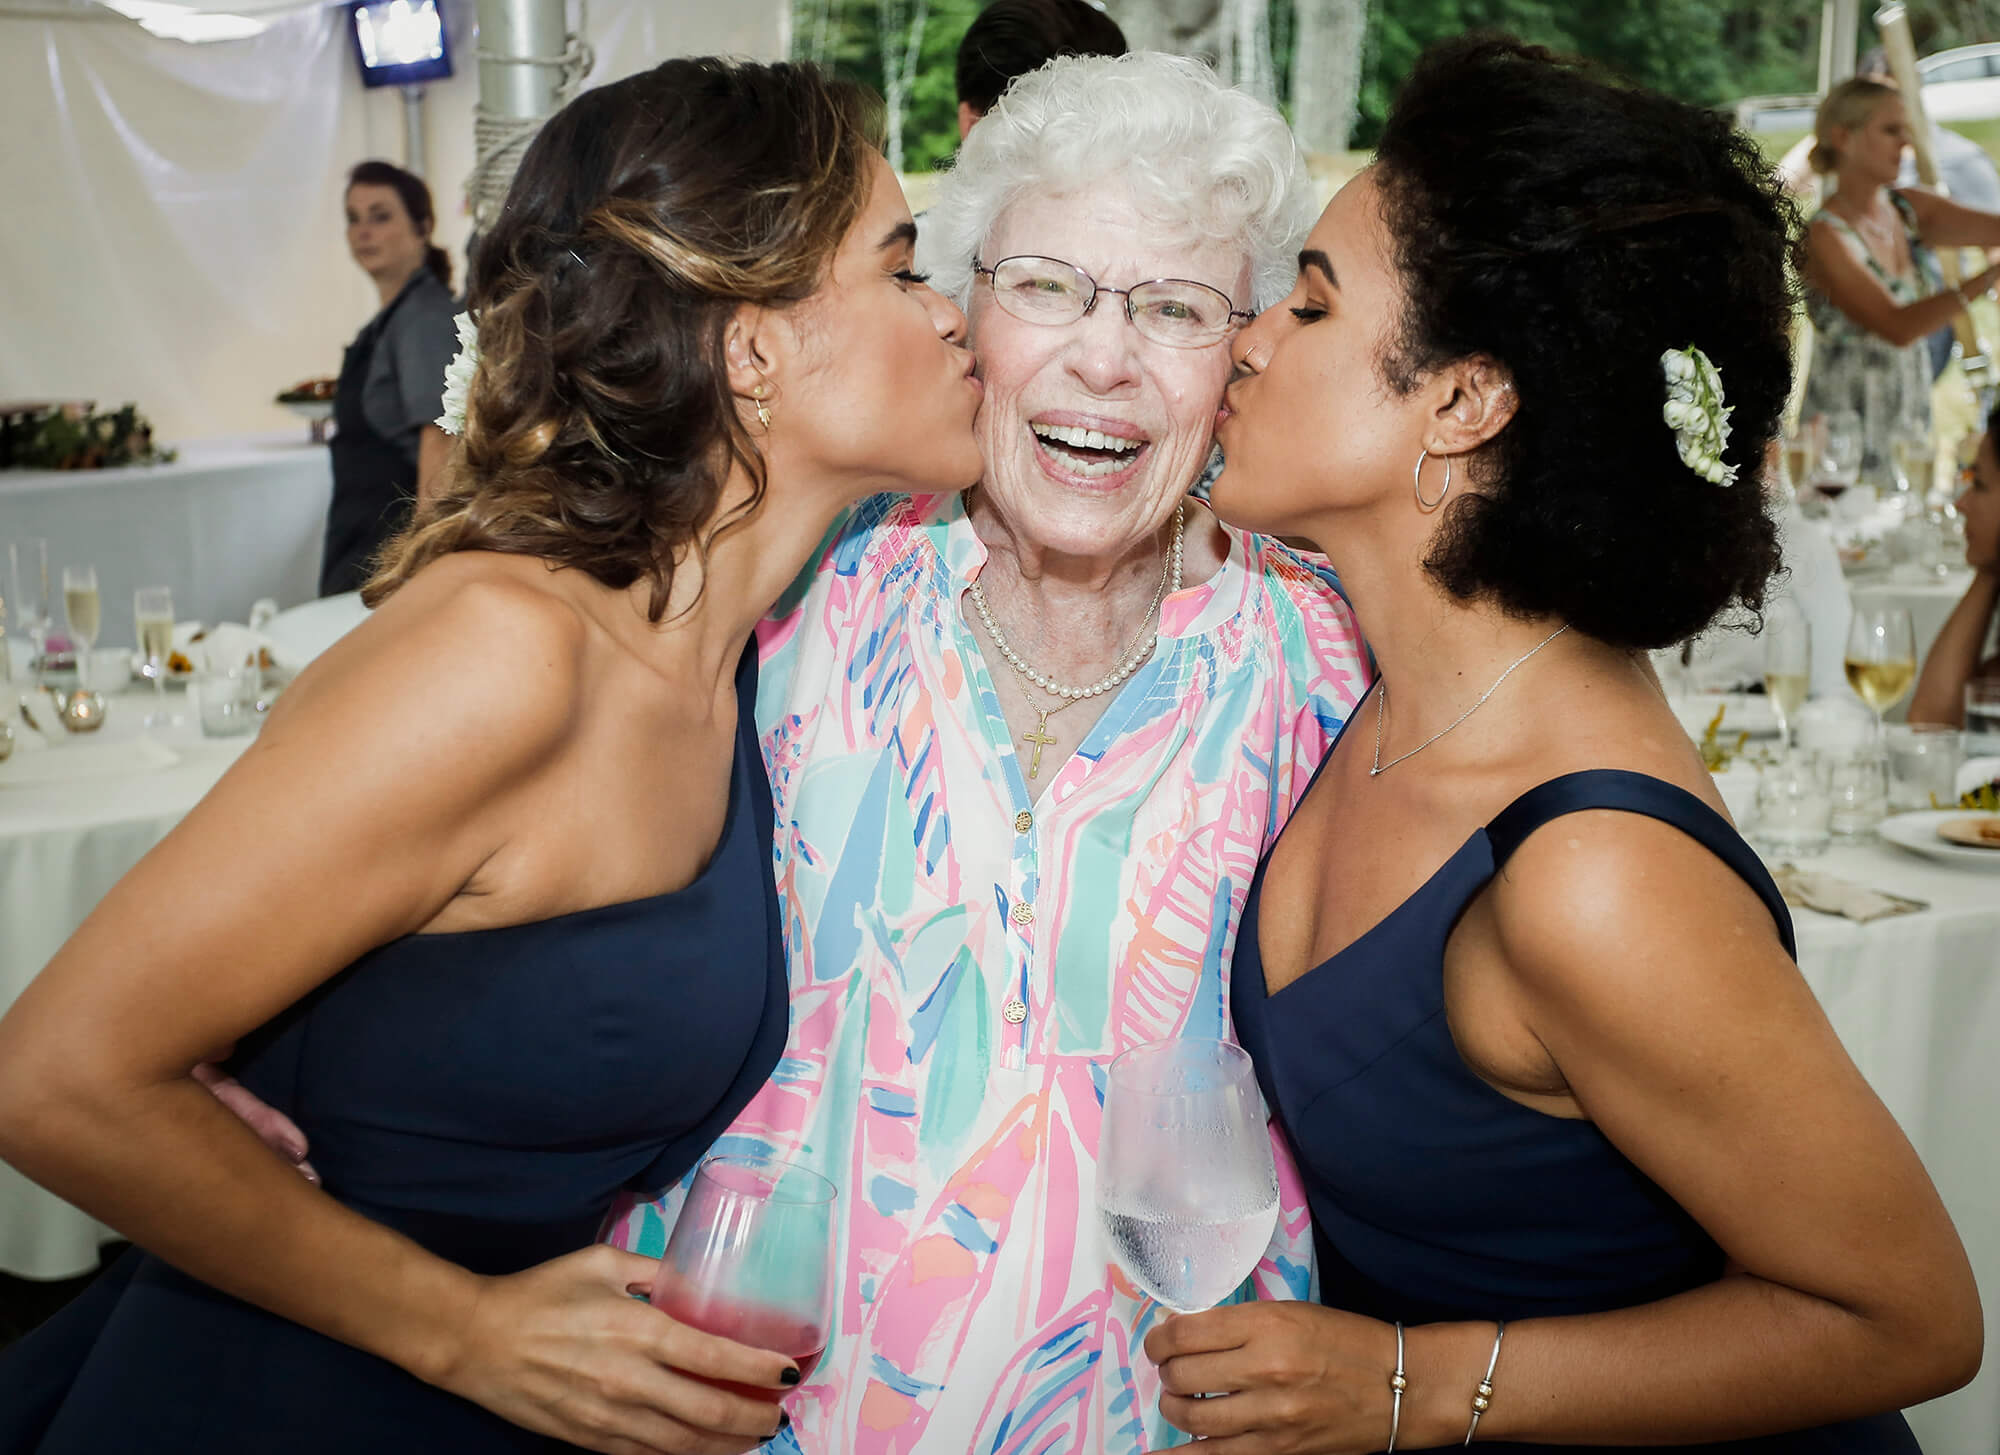 Wedding photography of two bridesmaids kissing their grandmother on each cheek during the reception